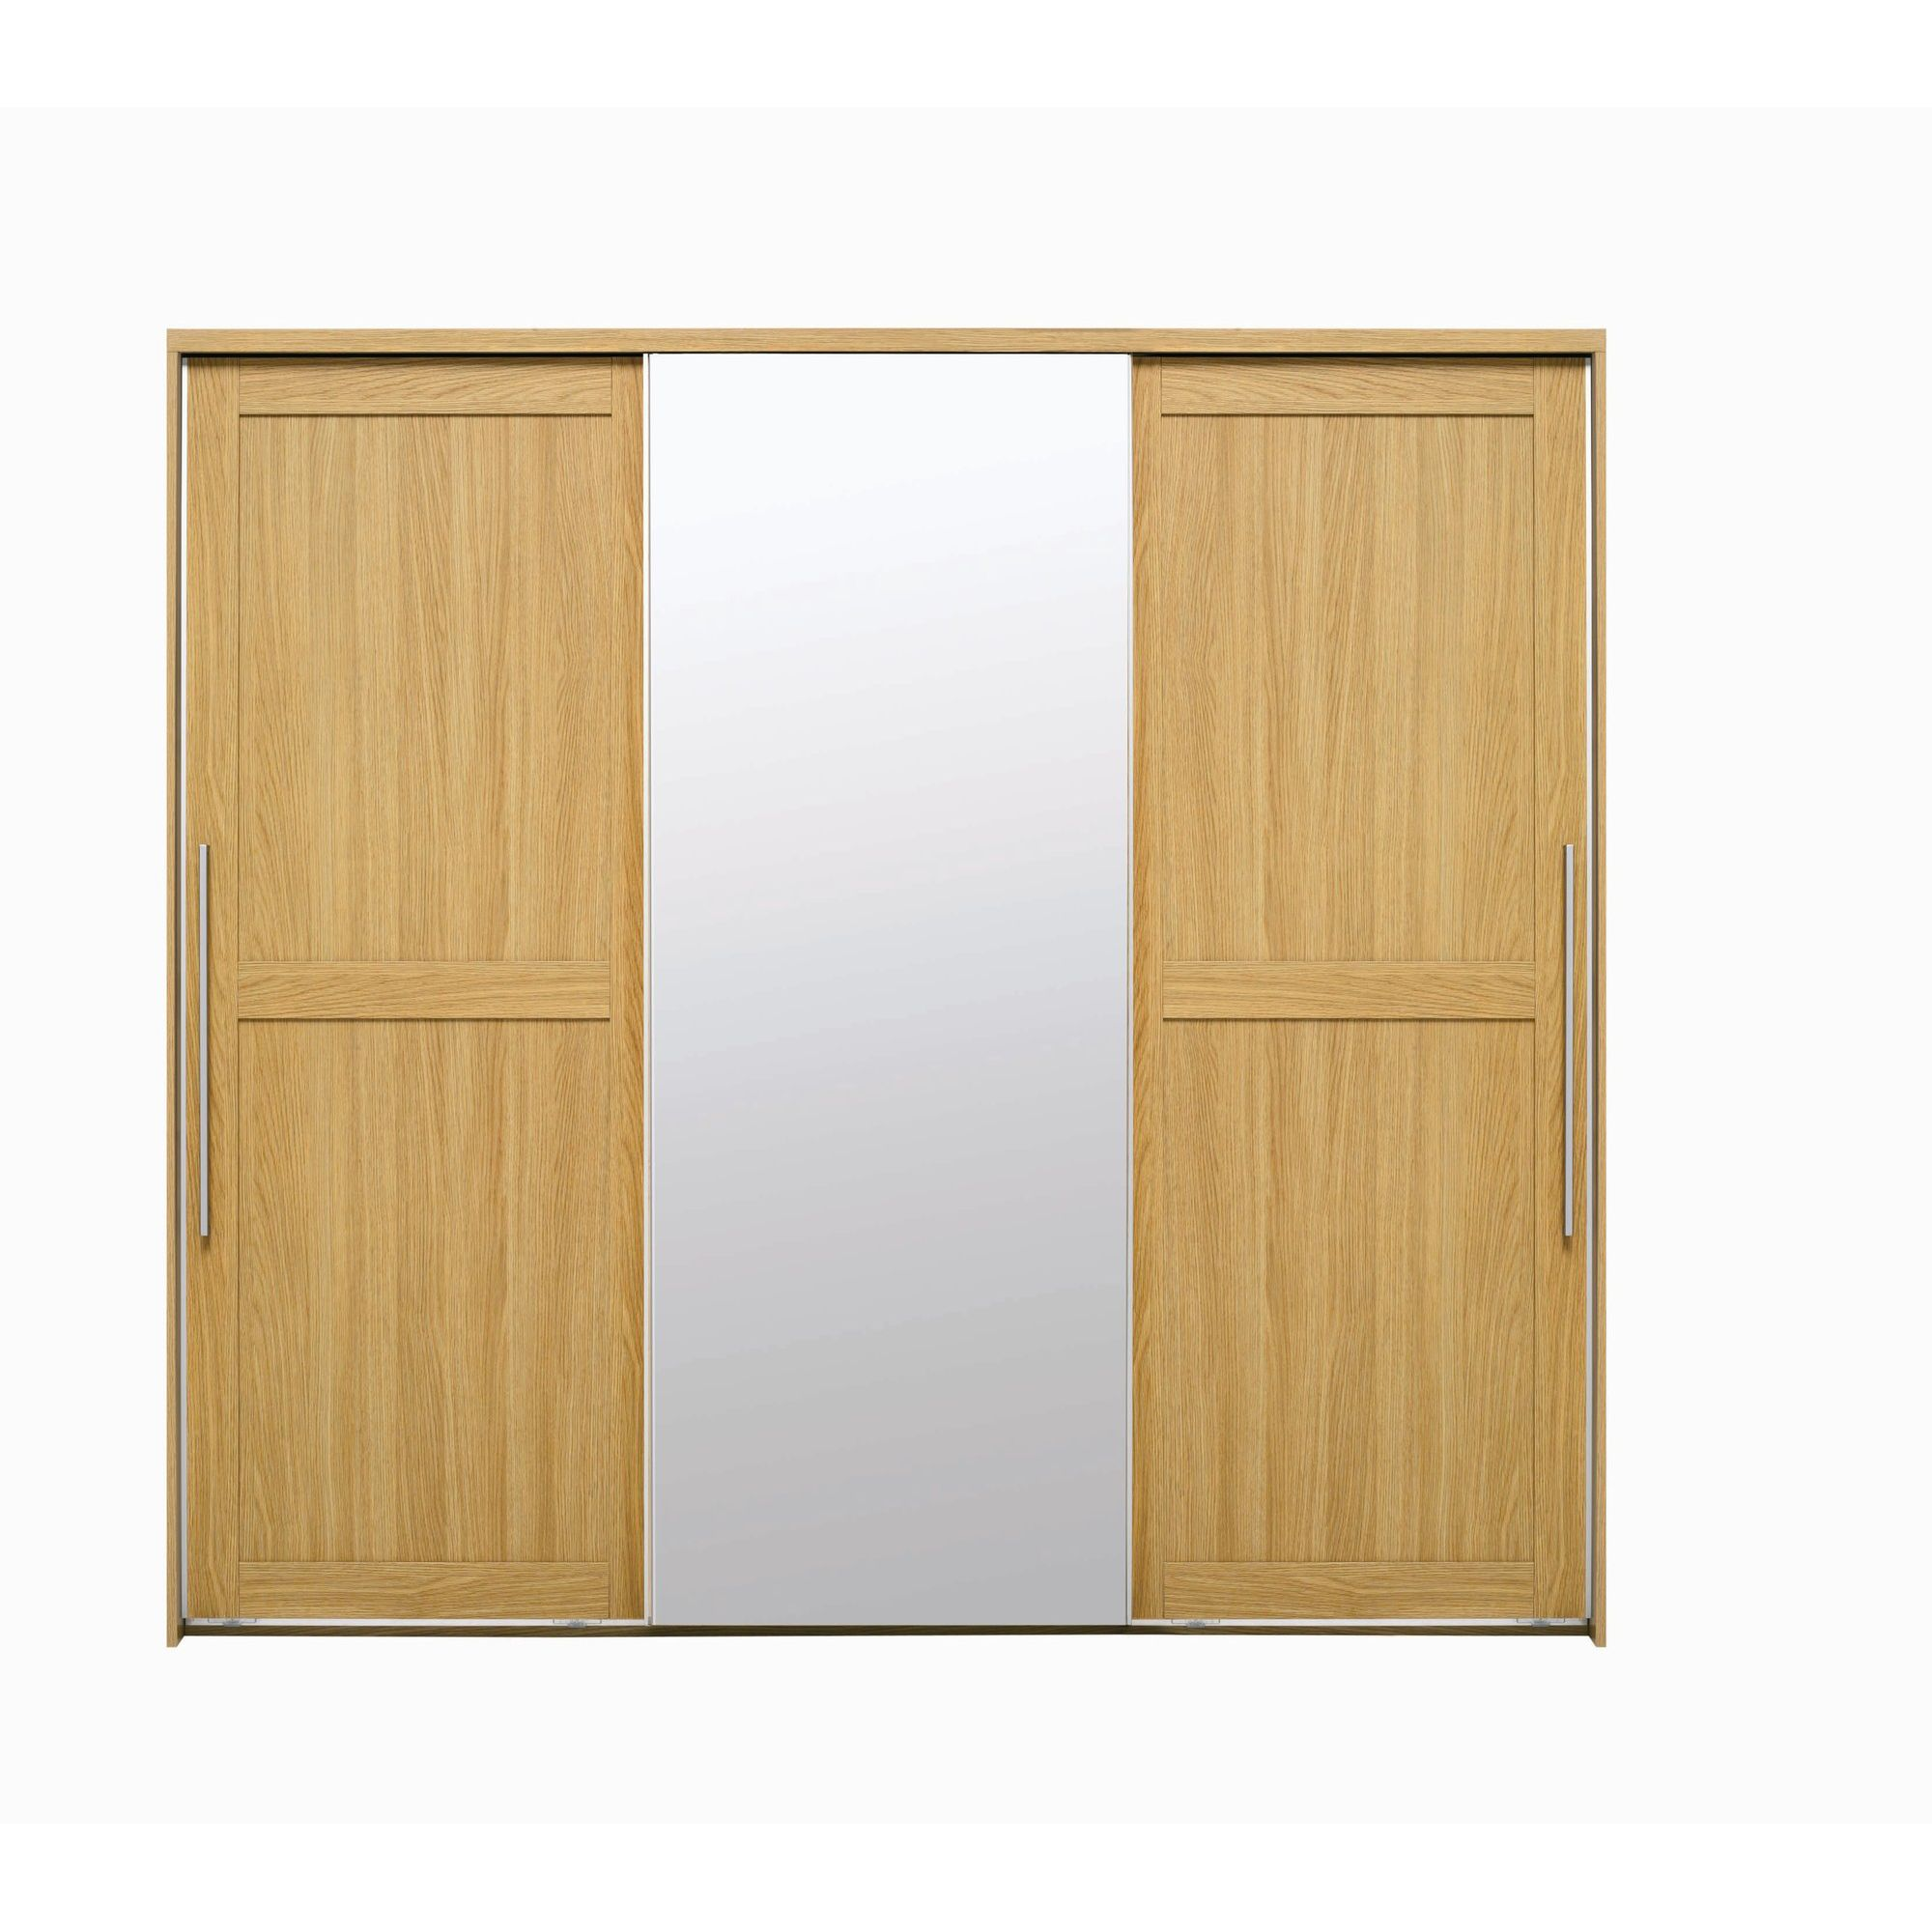 Caxton Melody 3 Door Mirrored Sliding Wardrobe in Natural Oak at Tesco Direct